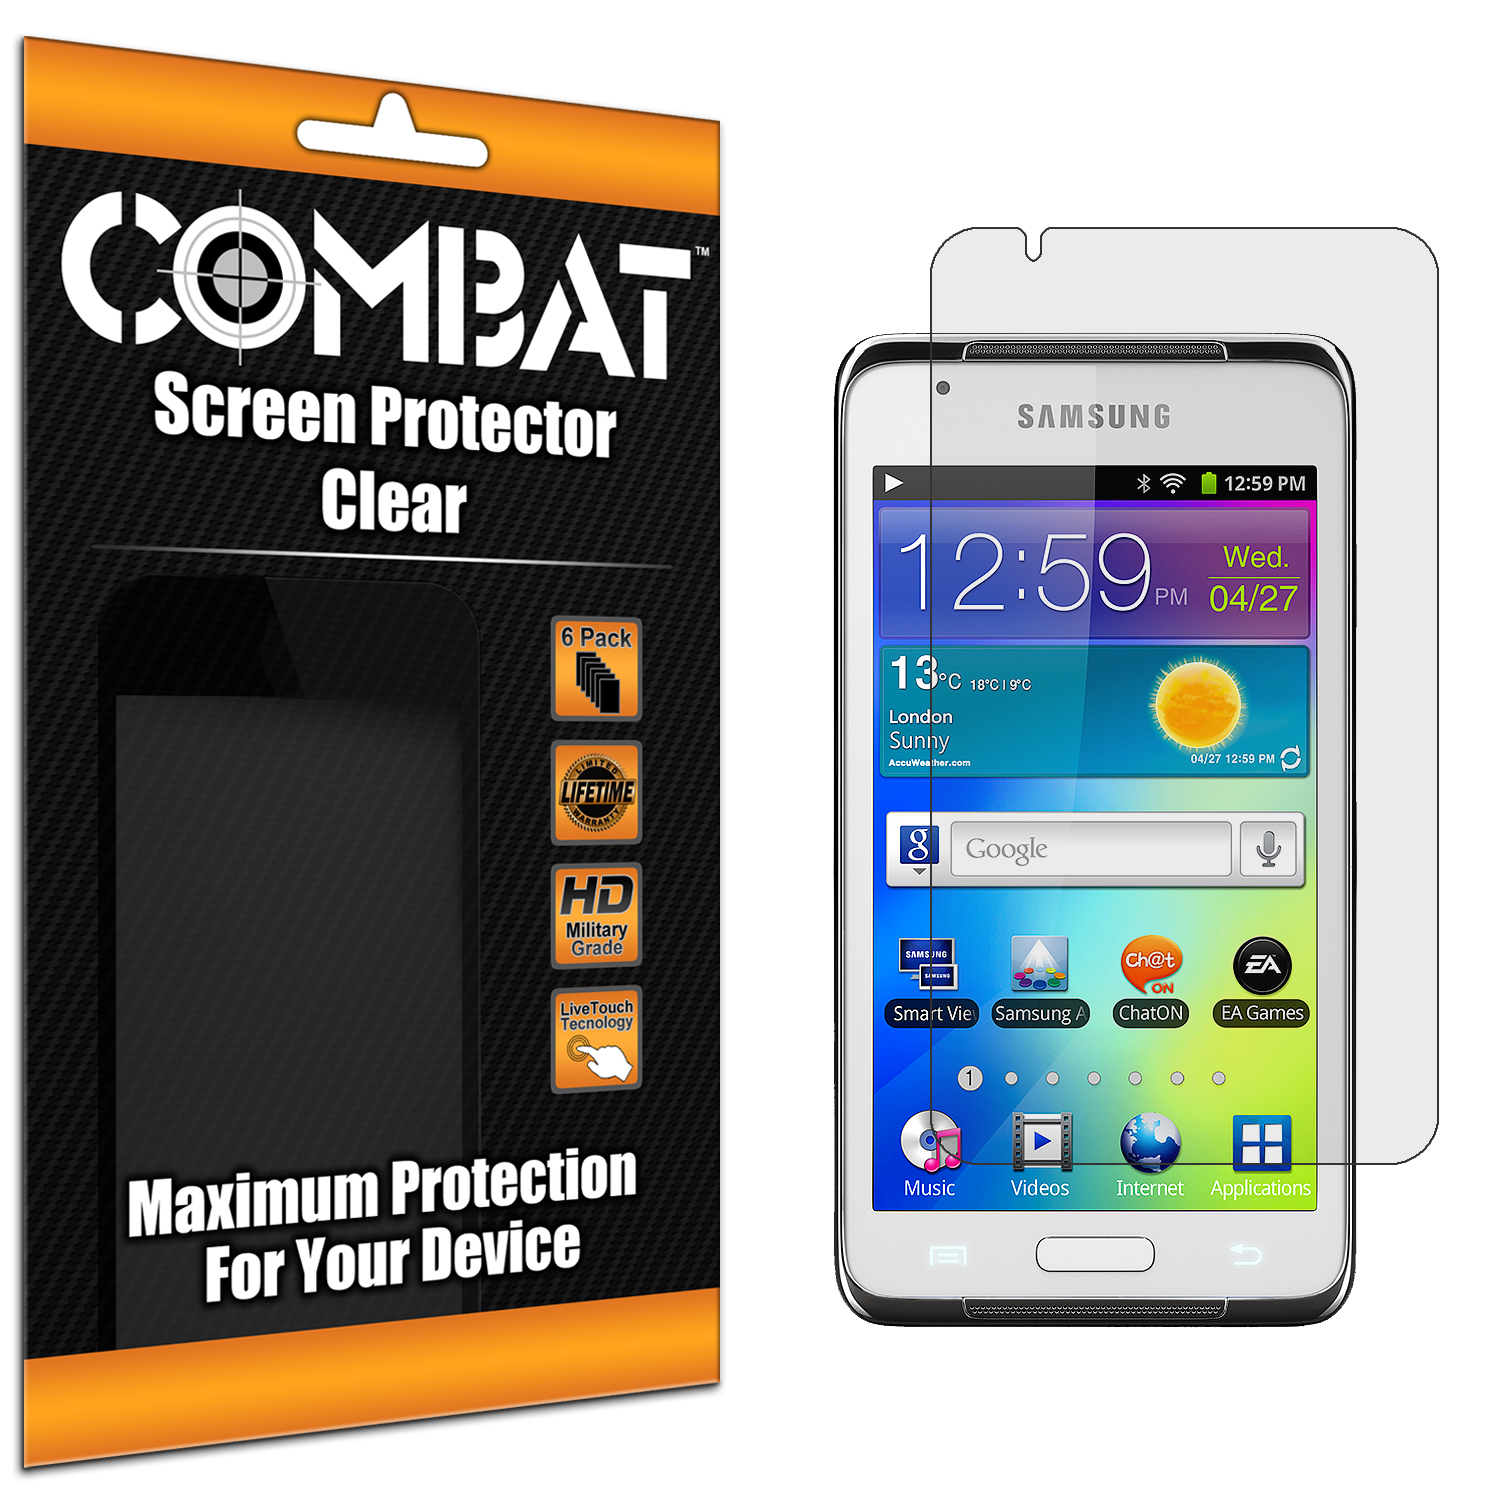 Samsung Galaxy Player 4.2 Combat 6 Pack HD Clear Screen Protector